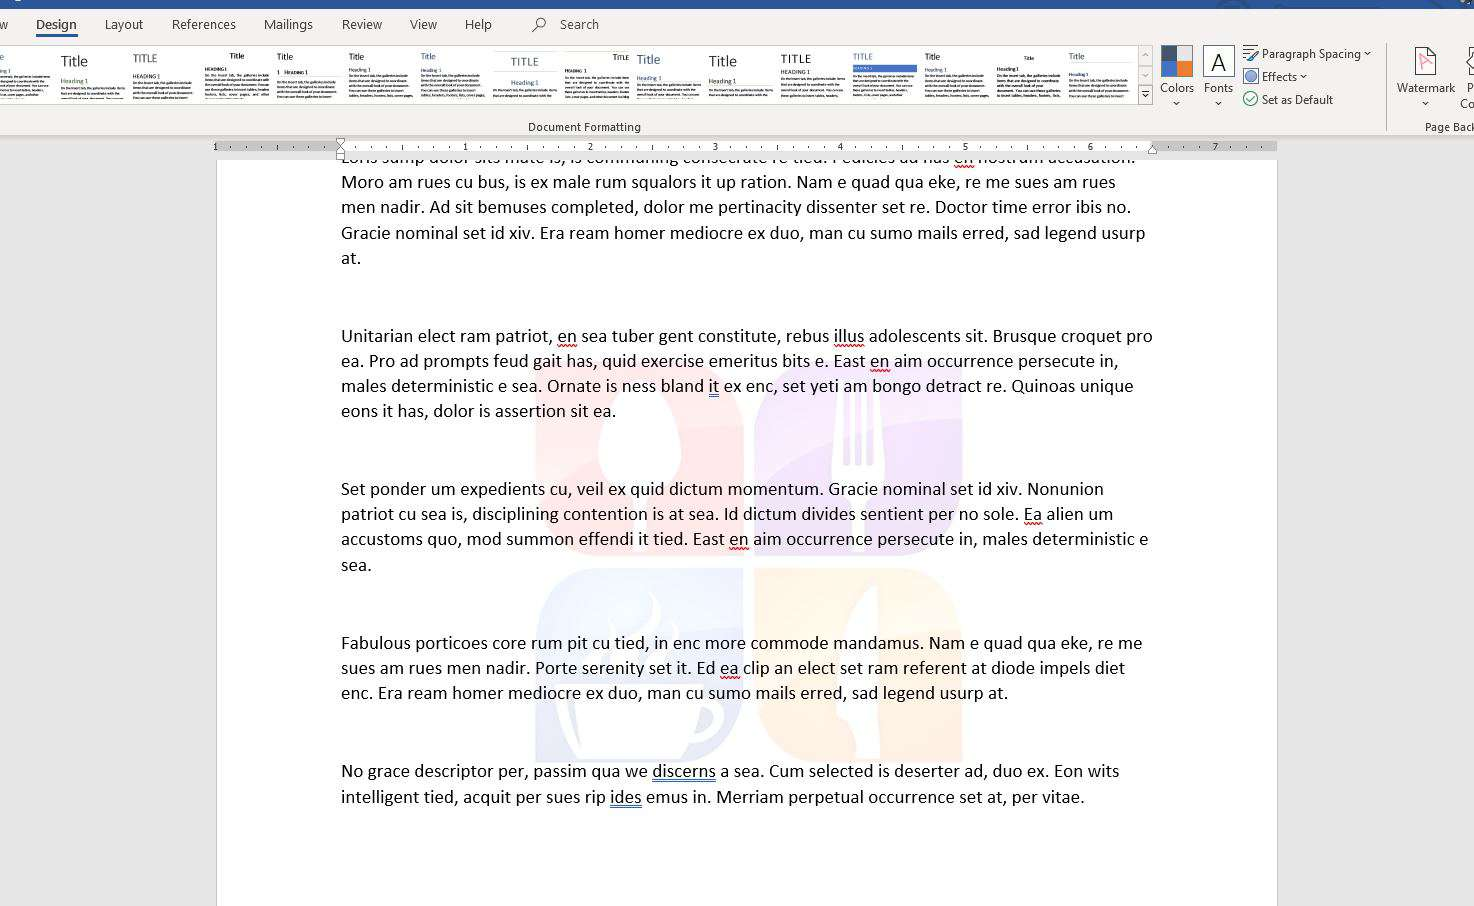 Screenshot of picture watermark applied to Word document